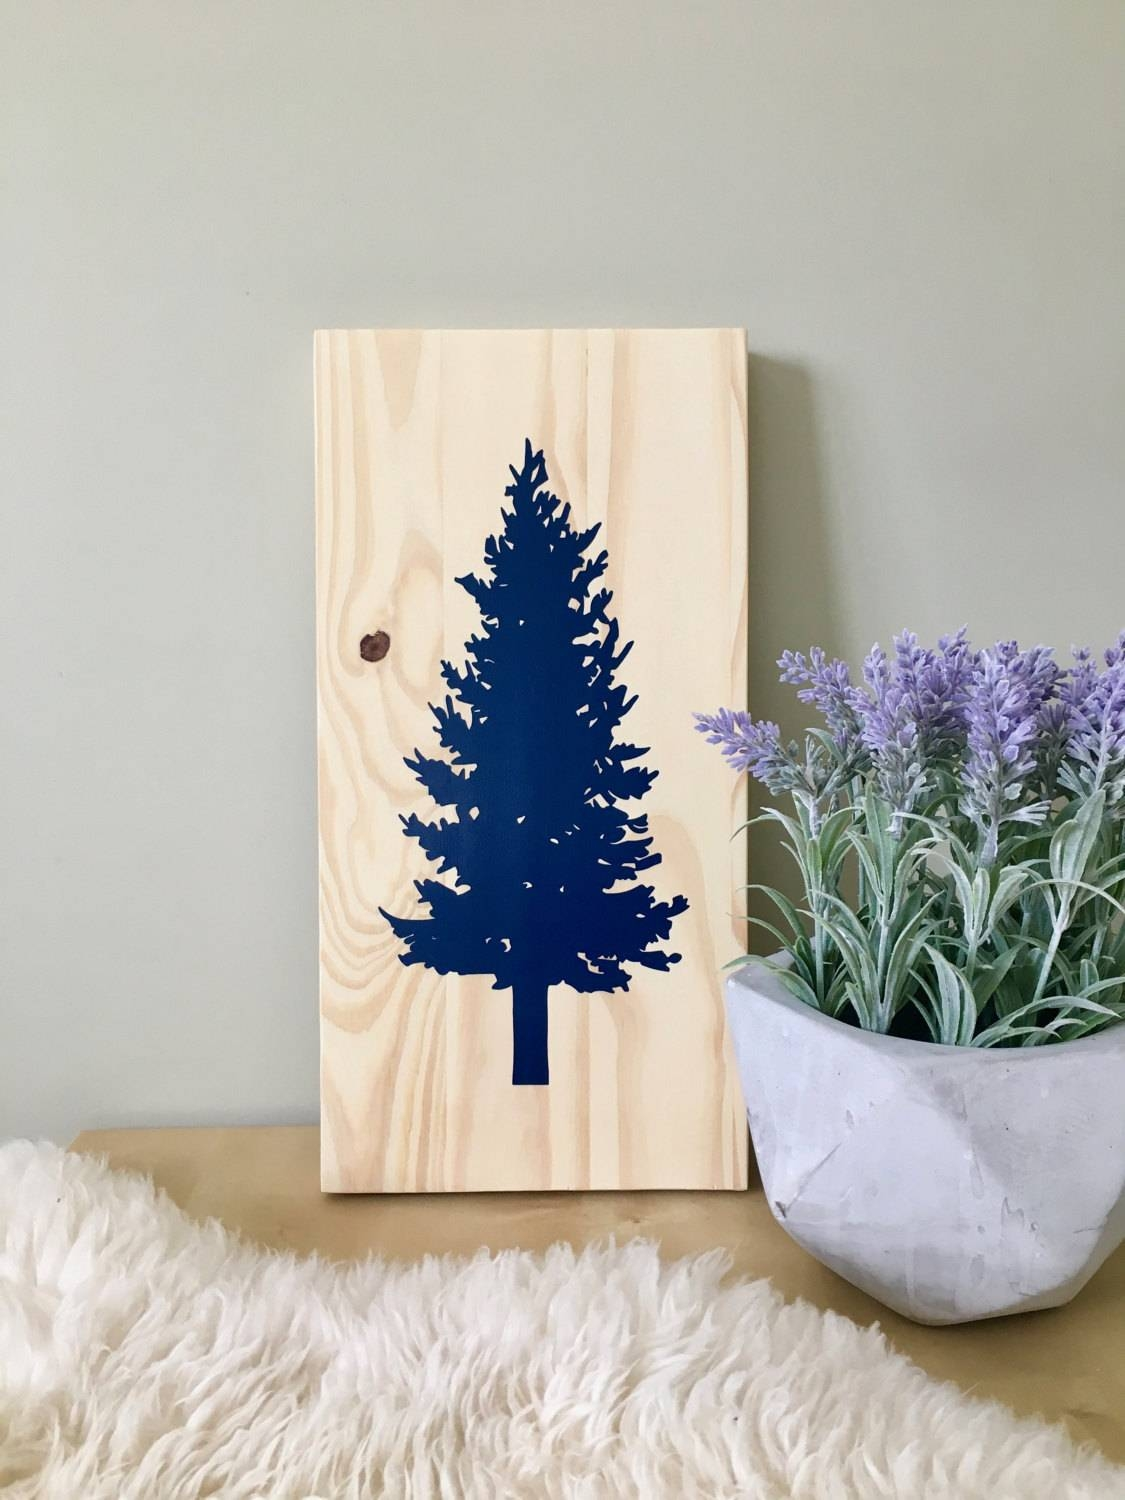 Wood Wall Art Tree Painting Spruce Tree Pine Tree Tree Inside Current Pine Tree Wall Art (View 30 of 30)